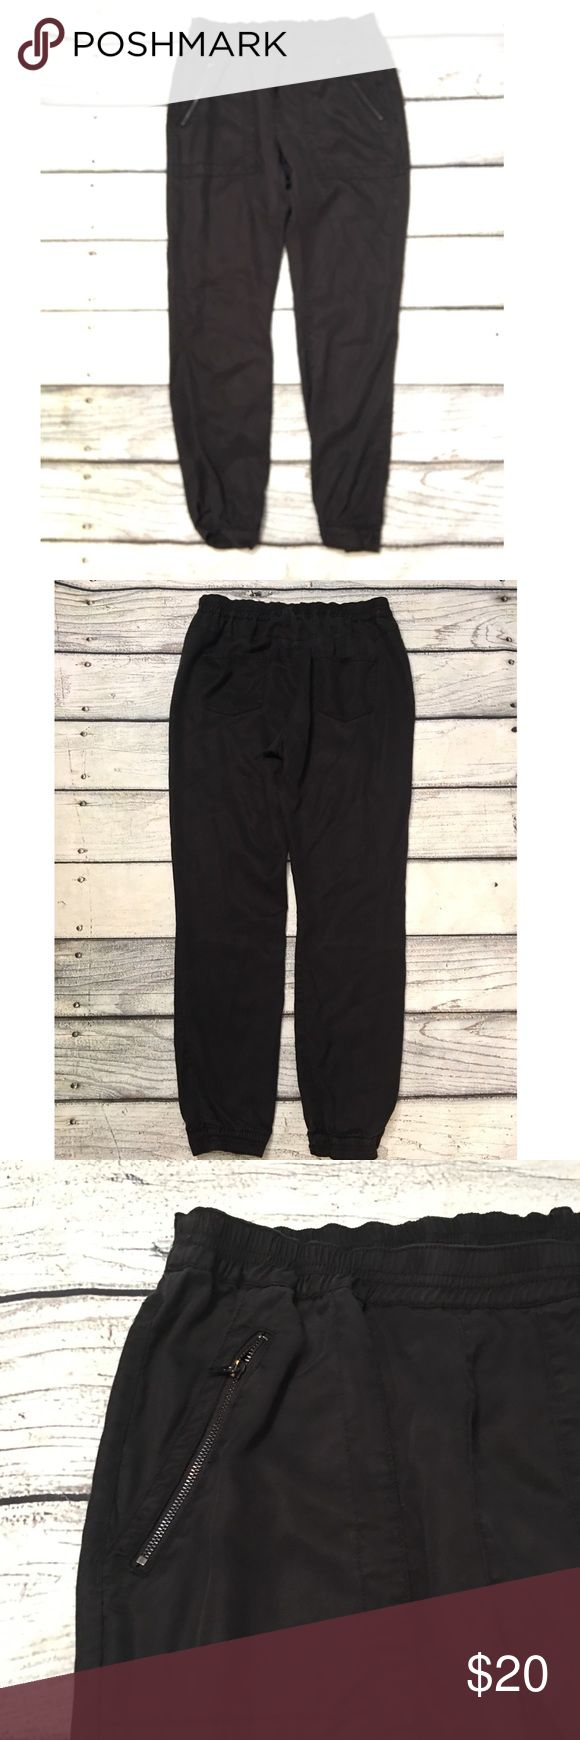 Sam Edelman black soft jogger pants M Preowned Woman's Sam Edelman Black jogger style pants elastic waist the bottom hem has elastic too has pockets  one of the back pockets has some snags it's looks like see last picture. I feel like it's not noticeable cause it's black. Soft material Size medium see measurements in pictures. Sam Edelman Pants Track Pants & Joggers